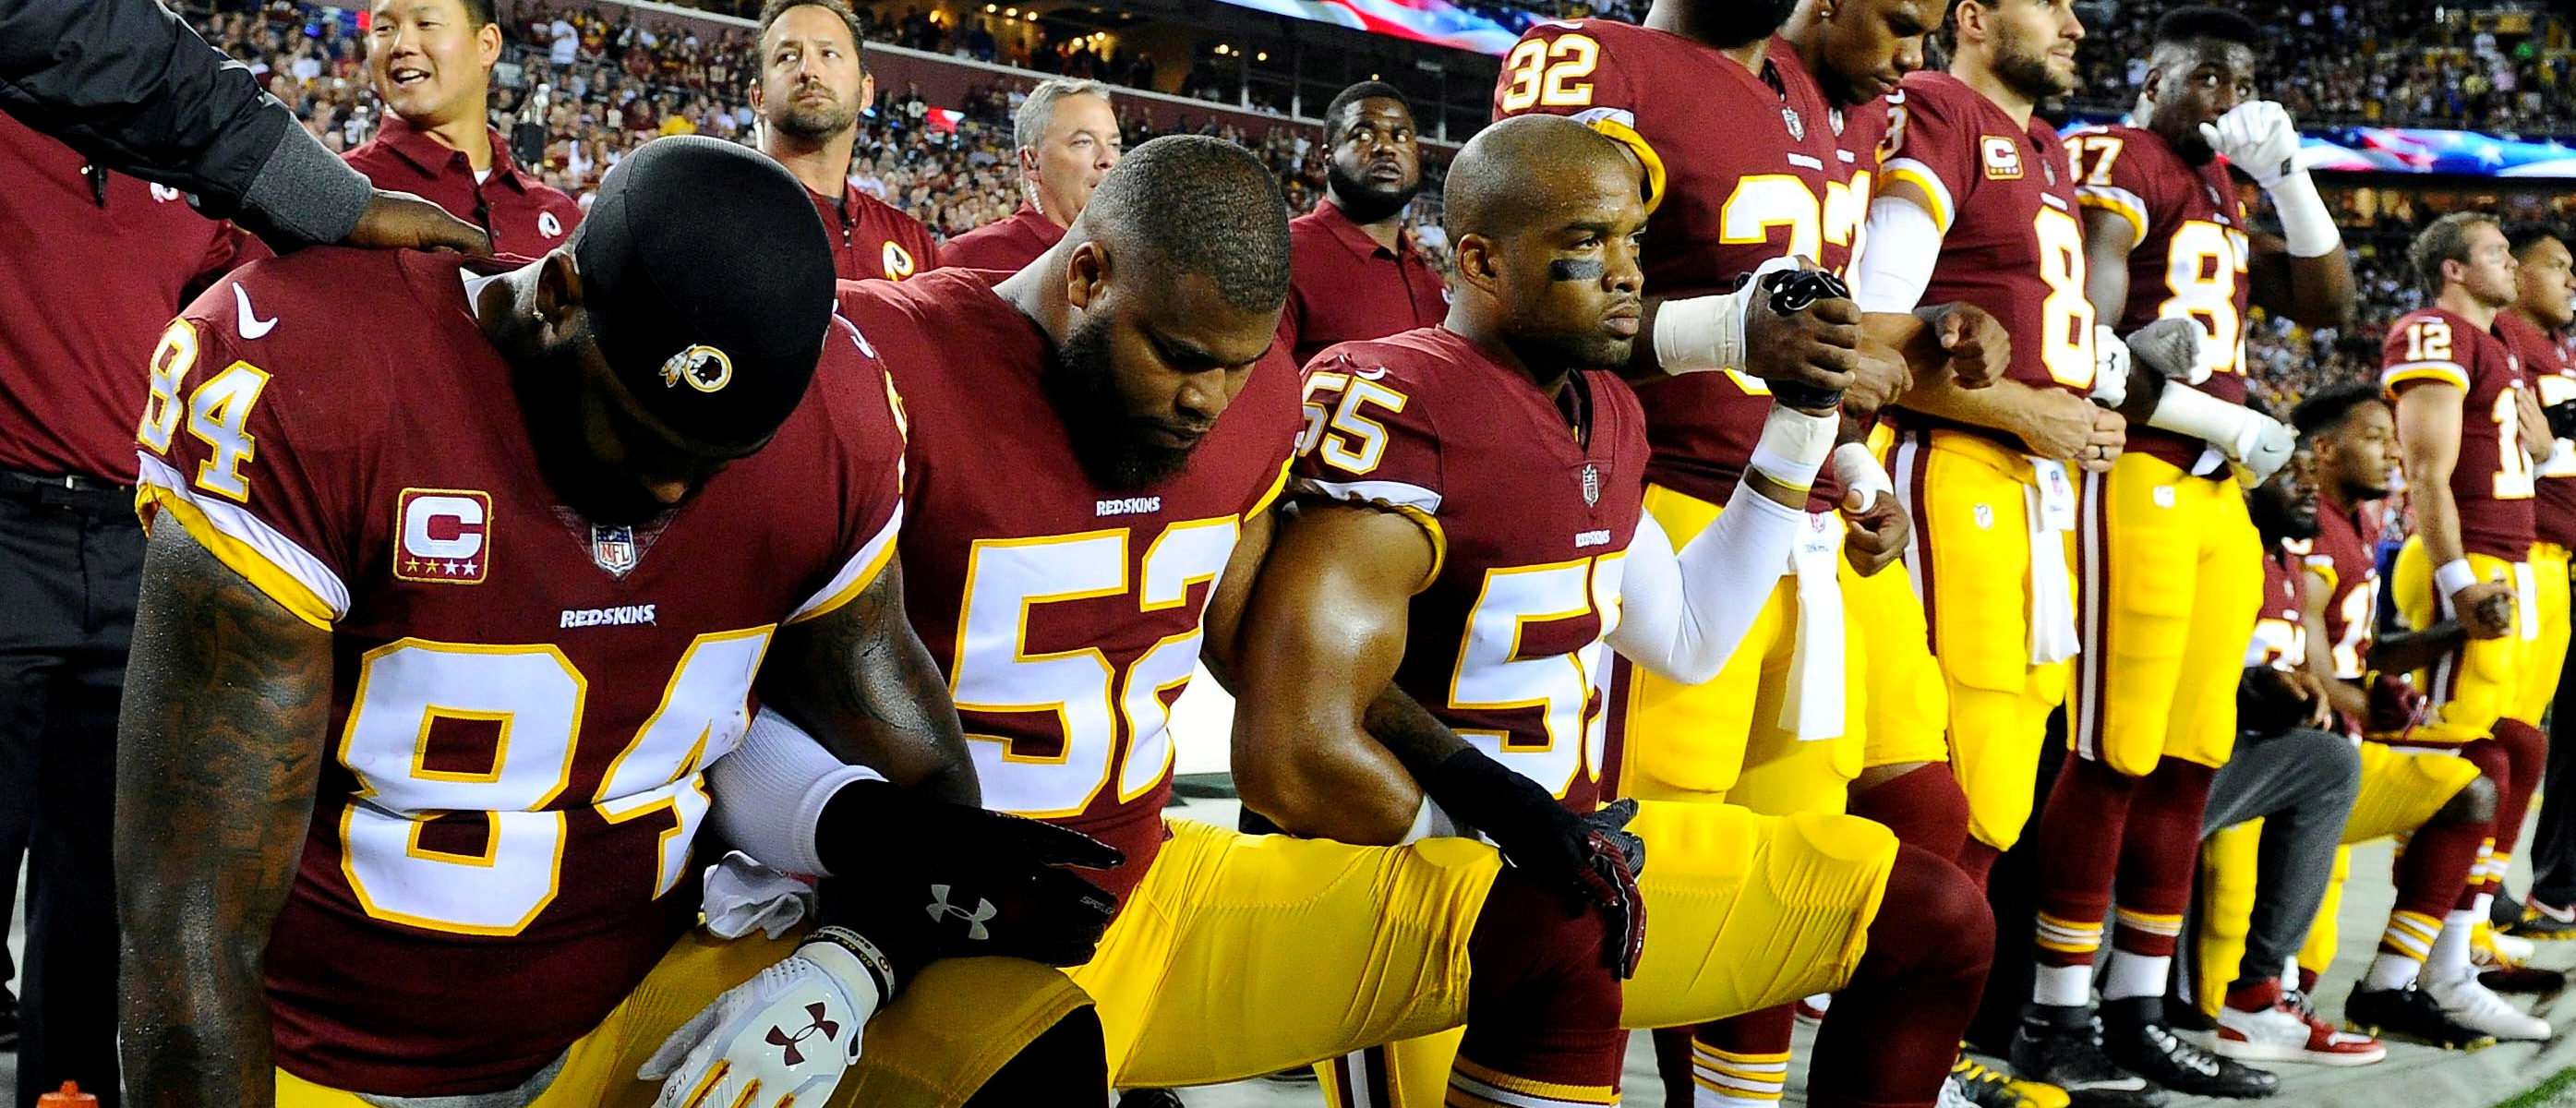 FILE PHOTO: Washington Redskins tight end Niles Paul (84) and linebacker Ryan Anderson (52) and Washington Redskins linebacker Chris Carter (55) kneel with teammates during the playing of the national anthem before the game between the Washington Redskins and the Oakland Raiders at FedEx Field in Landover, MD, U.S., September 24, 2017. Mandatory Credit: Brad Mills-USA TODAY Sports/File Photo - RC138C51C170